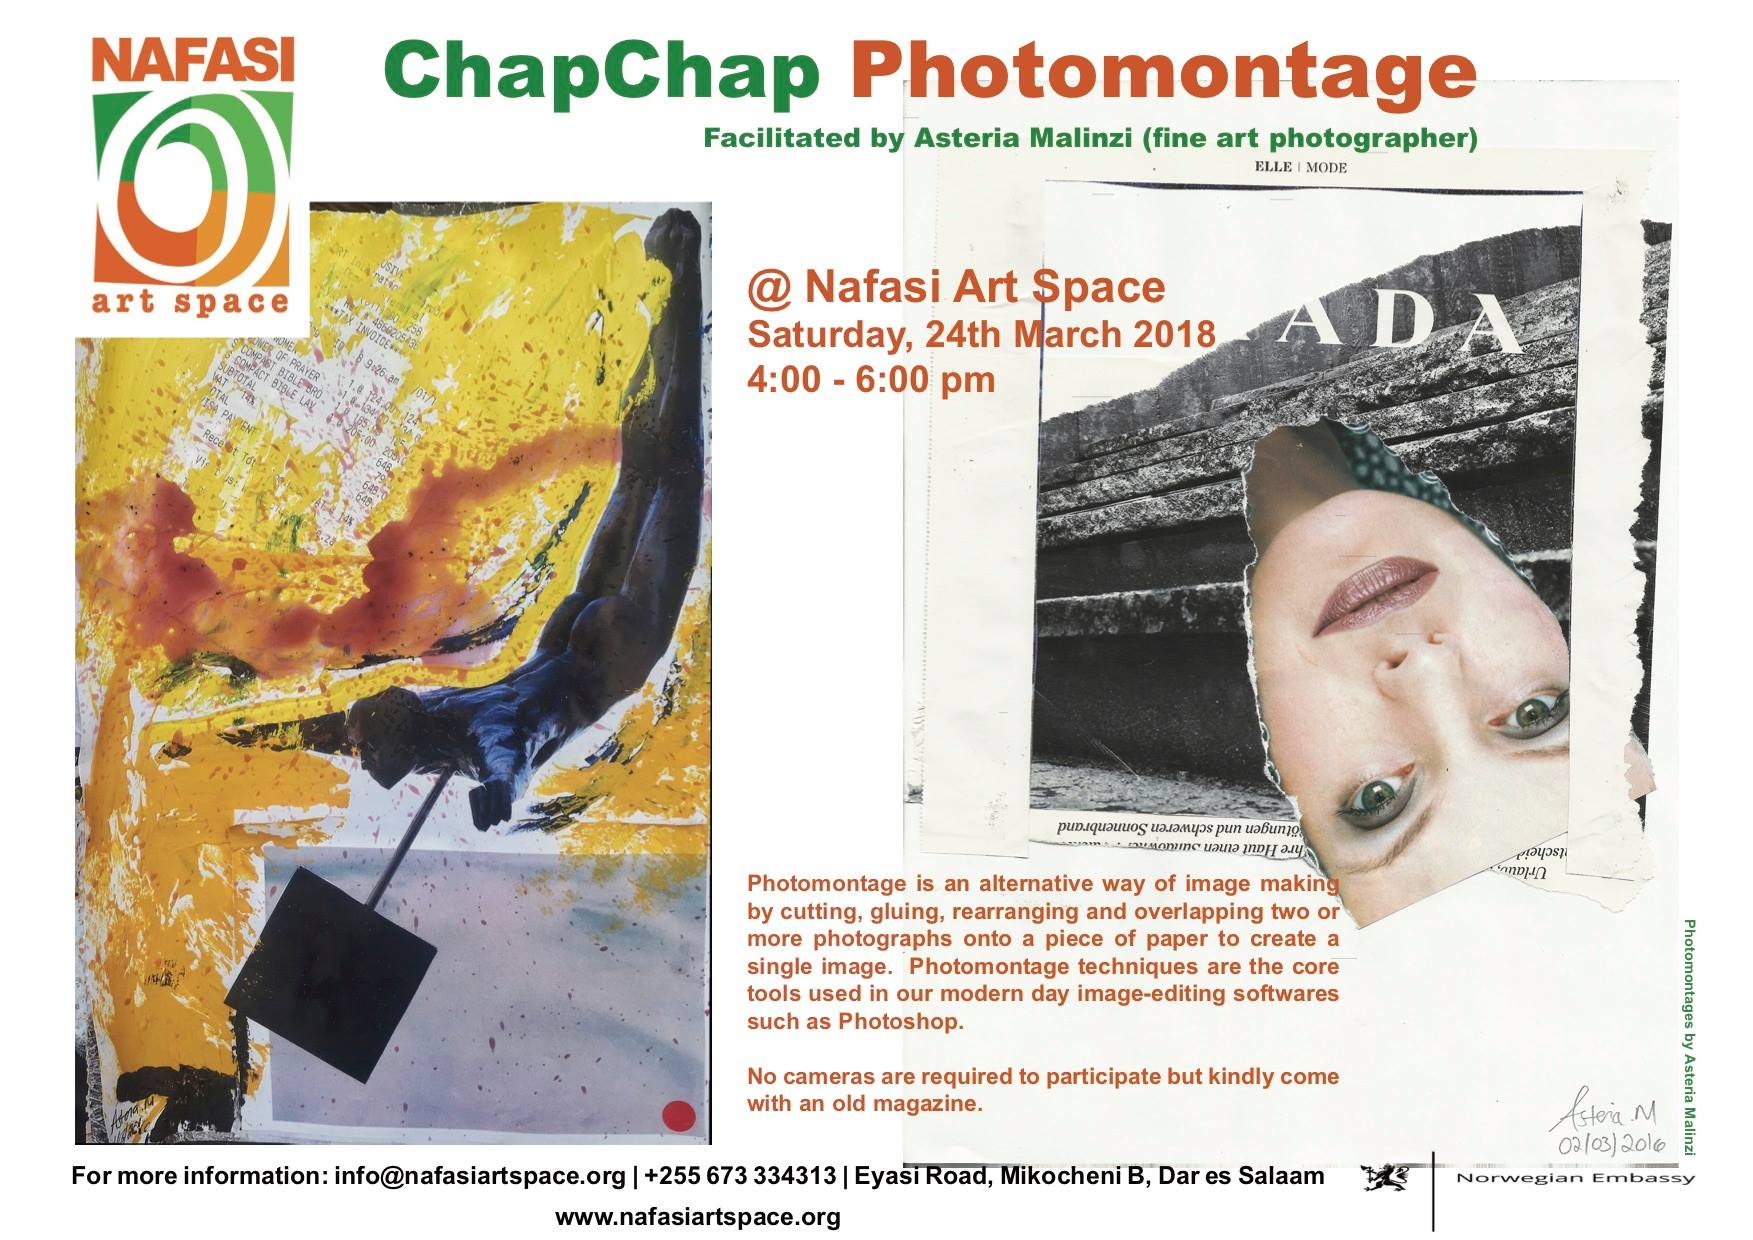 Poster for ChapChap Photomontage: Public Art Workshop at Nafasi Art Space